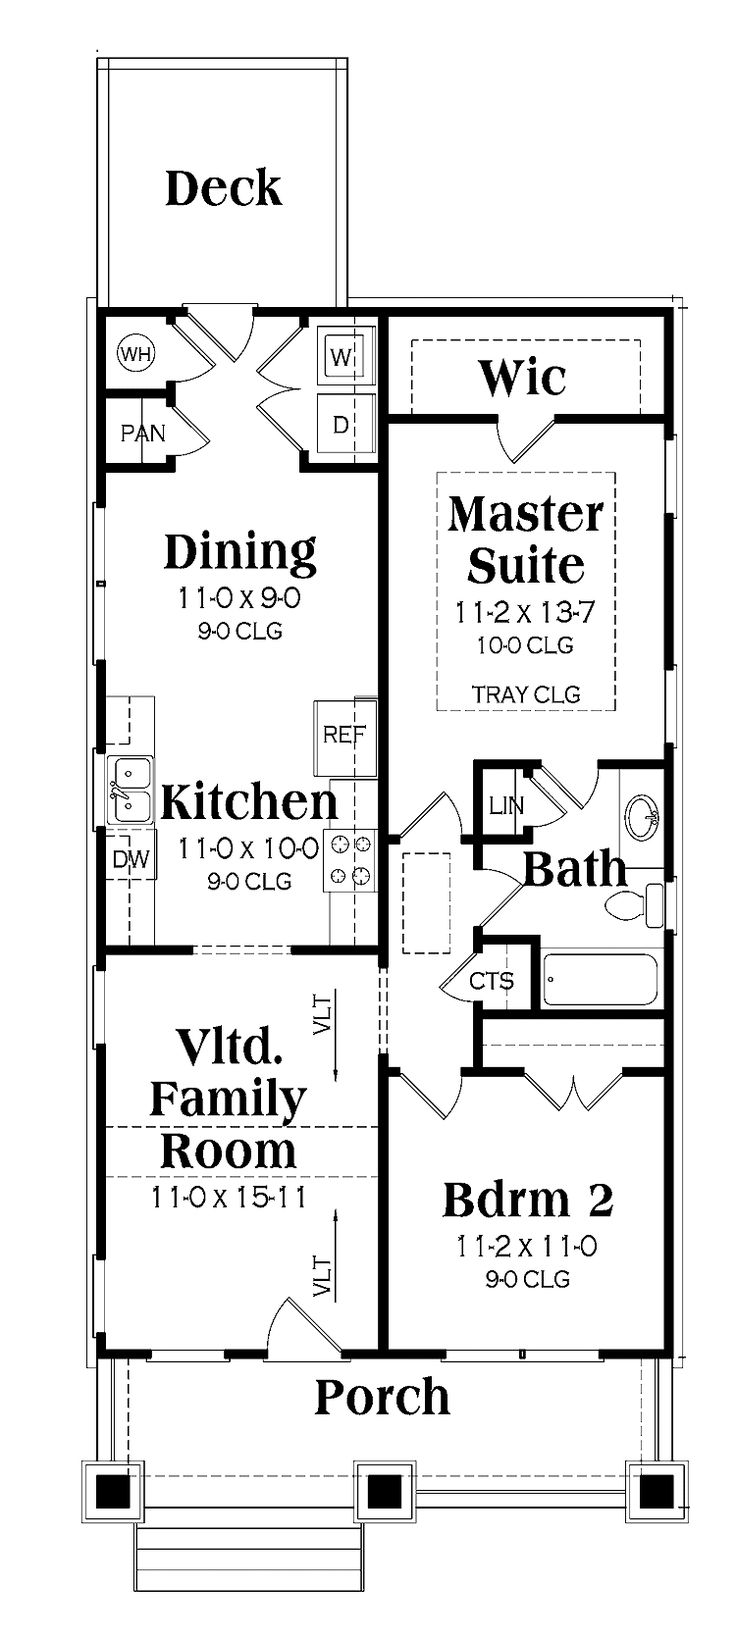 78 best floor plans images on pinterest house floor plans small floor plans 1 story craftsman home with 2 bedrooms 1 bathroom and 966 total square feet